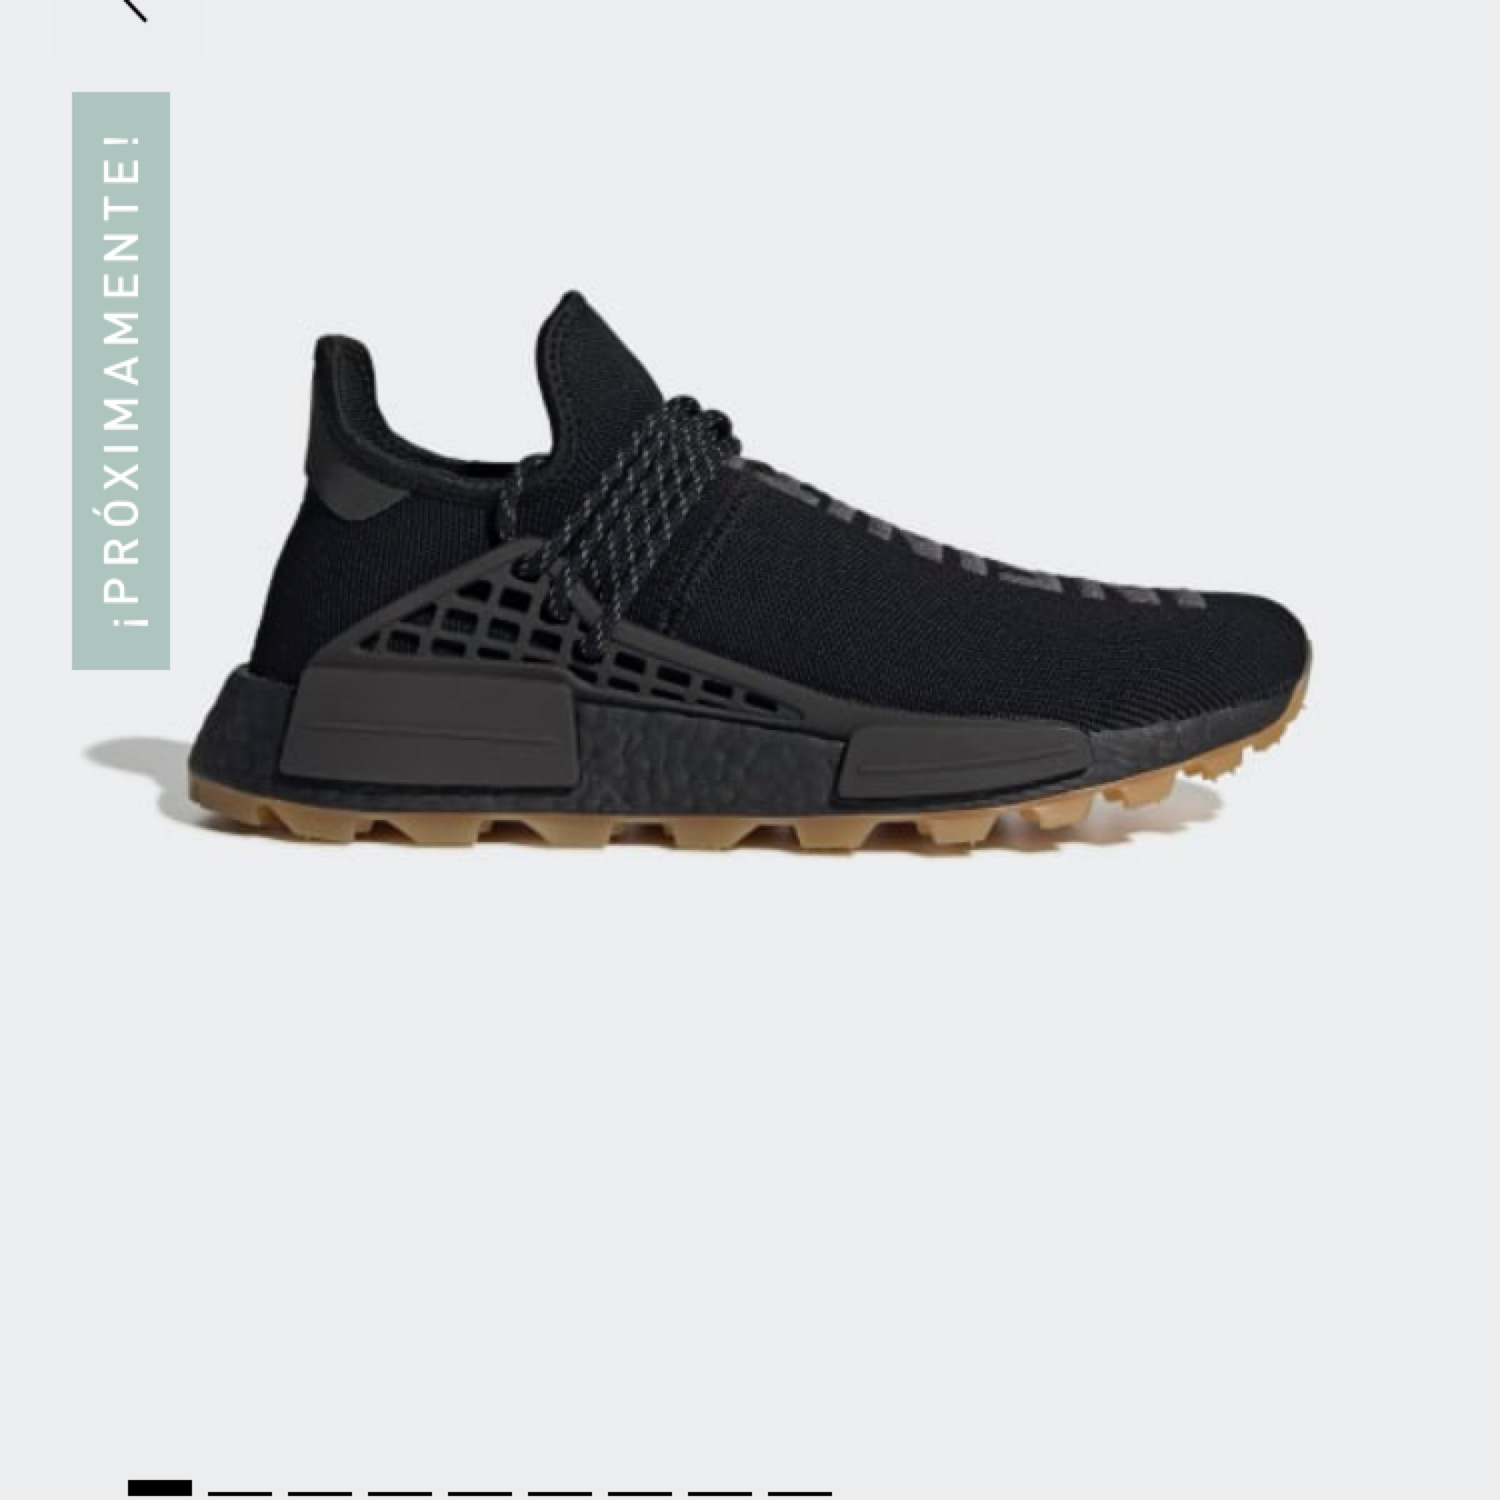 nouveaux styles 2acc3 6cdf2 Adidas Nmd Hu (Human Race)